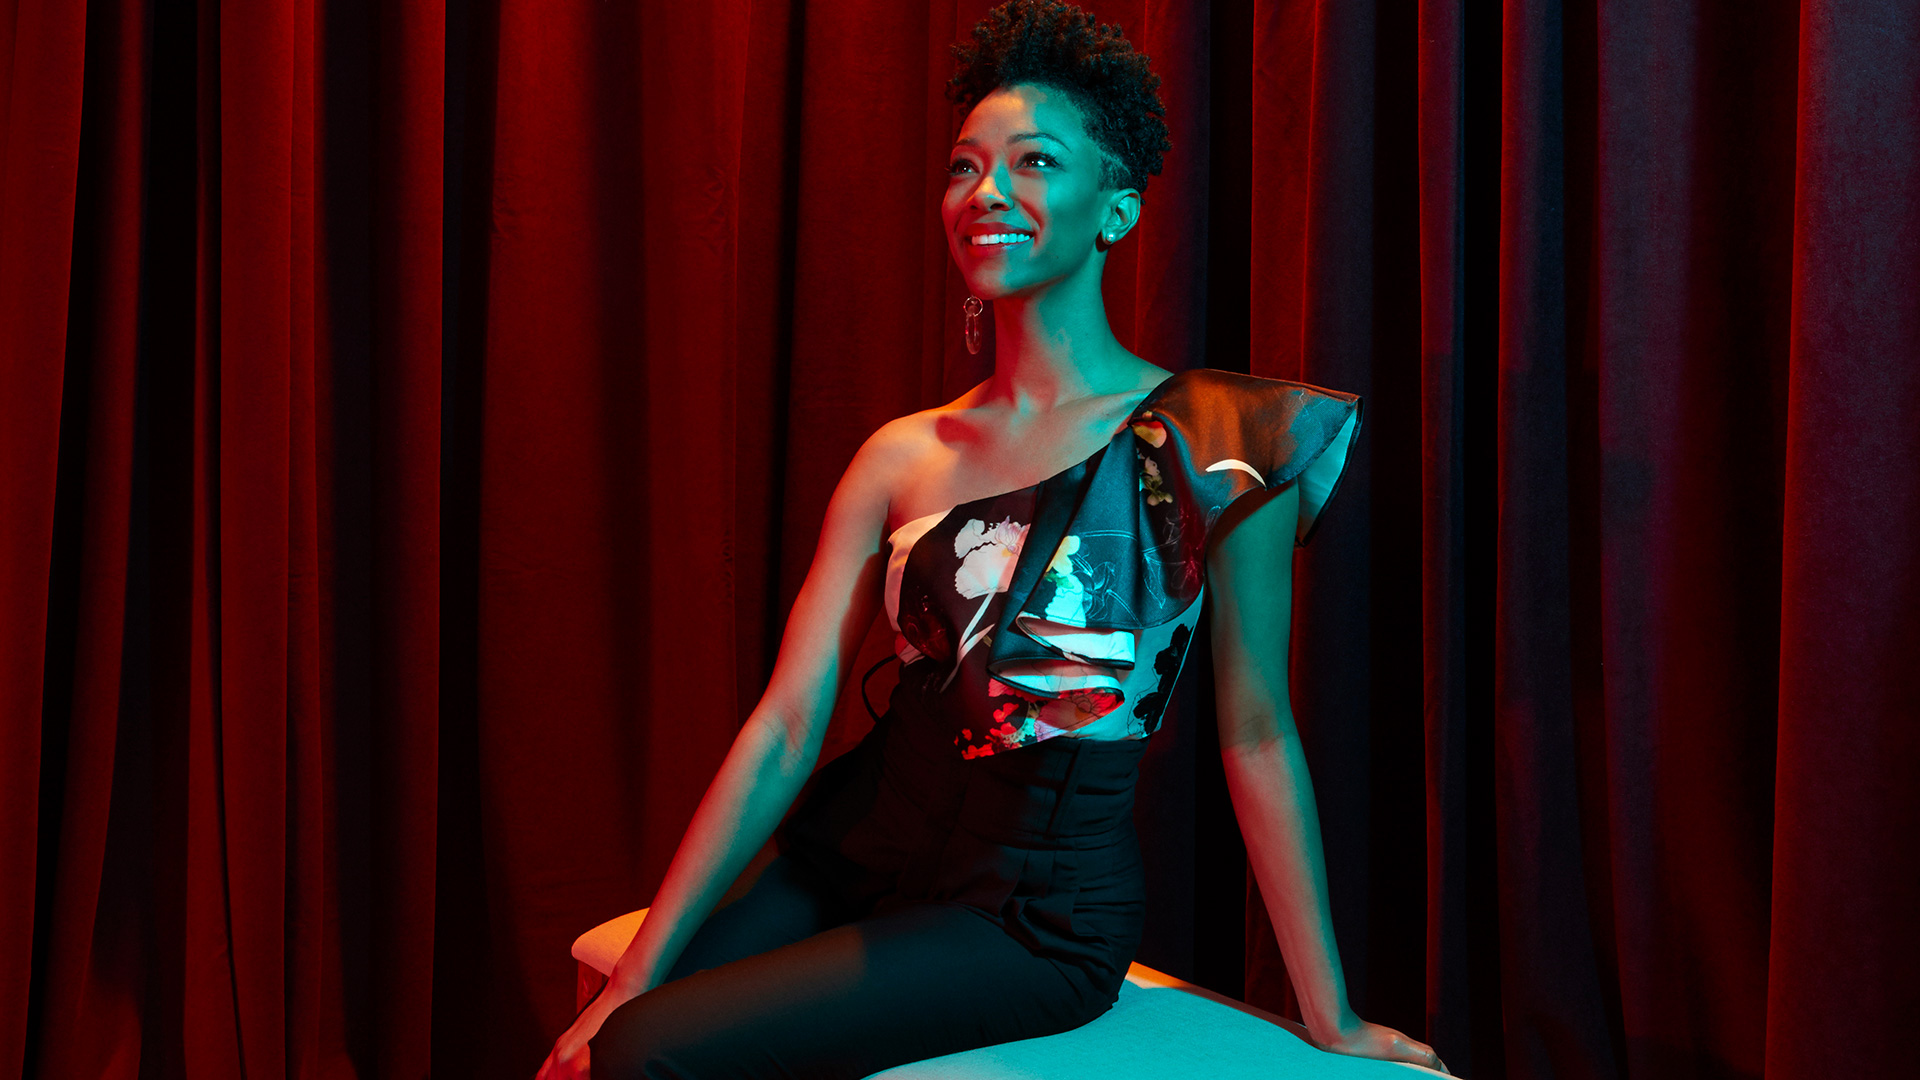 Sonequa Martin-Green is out of this world